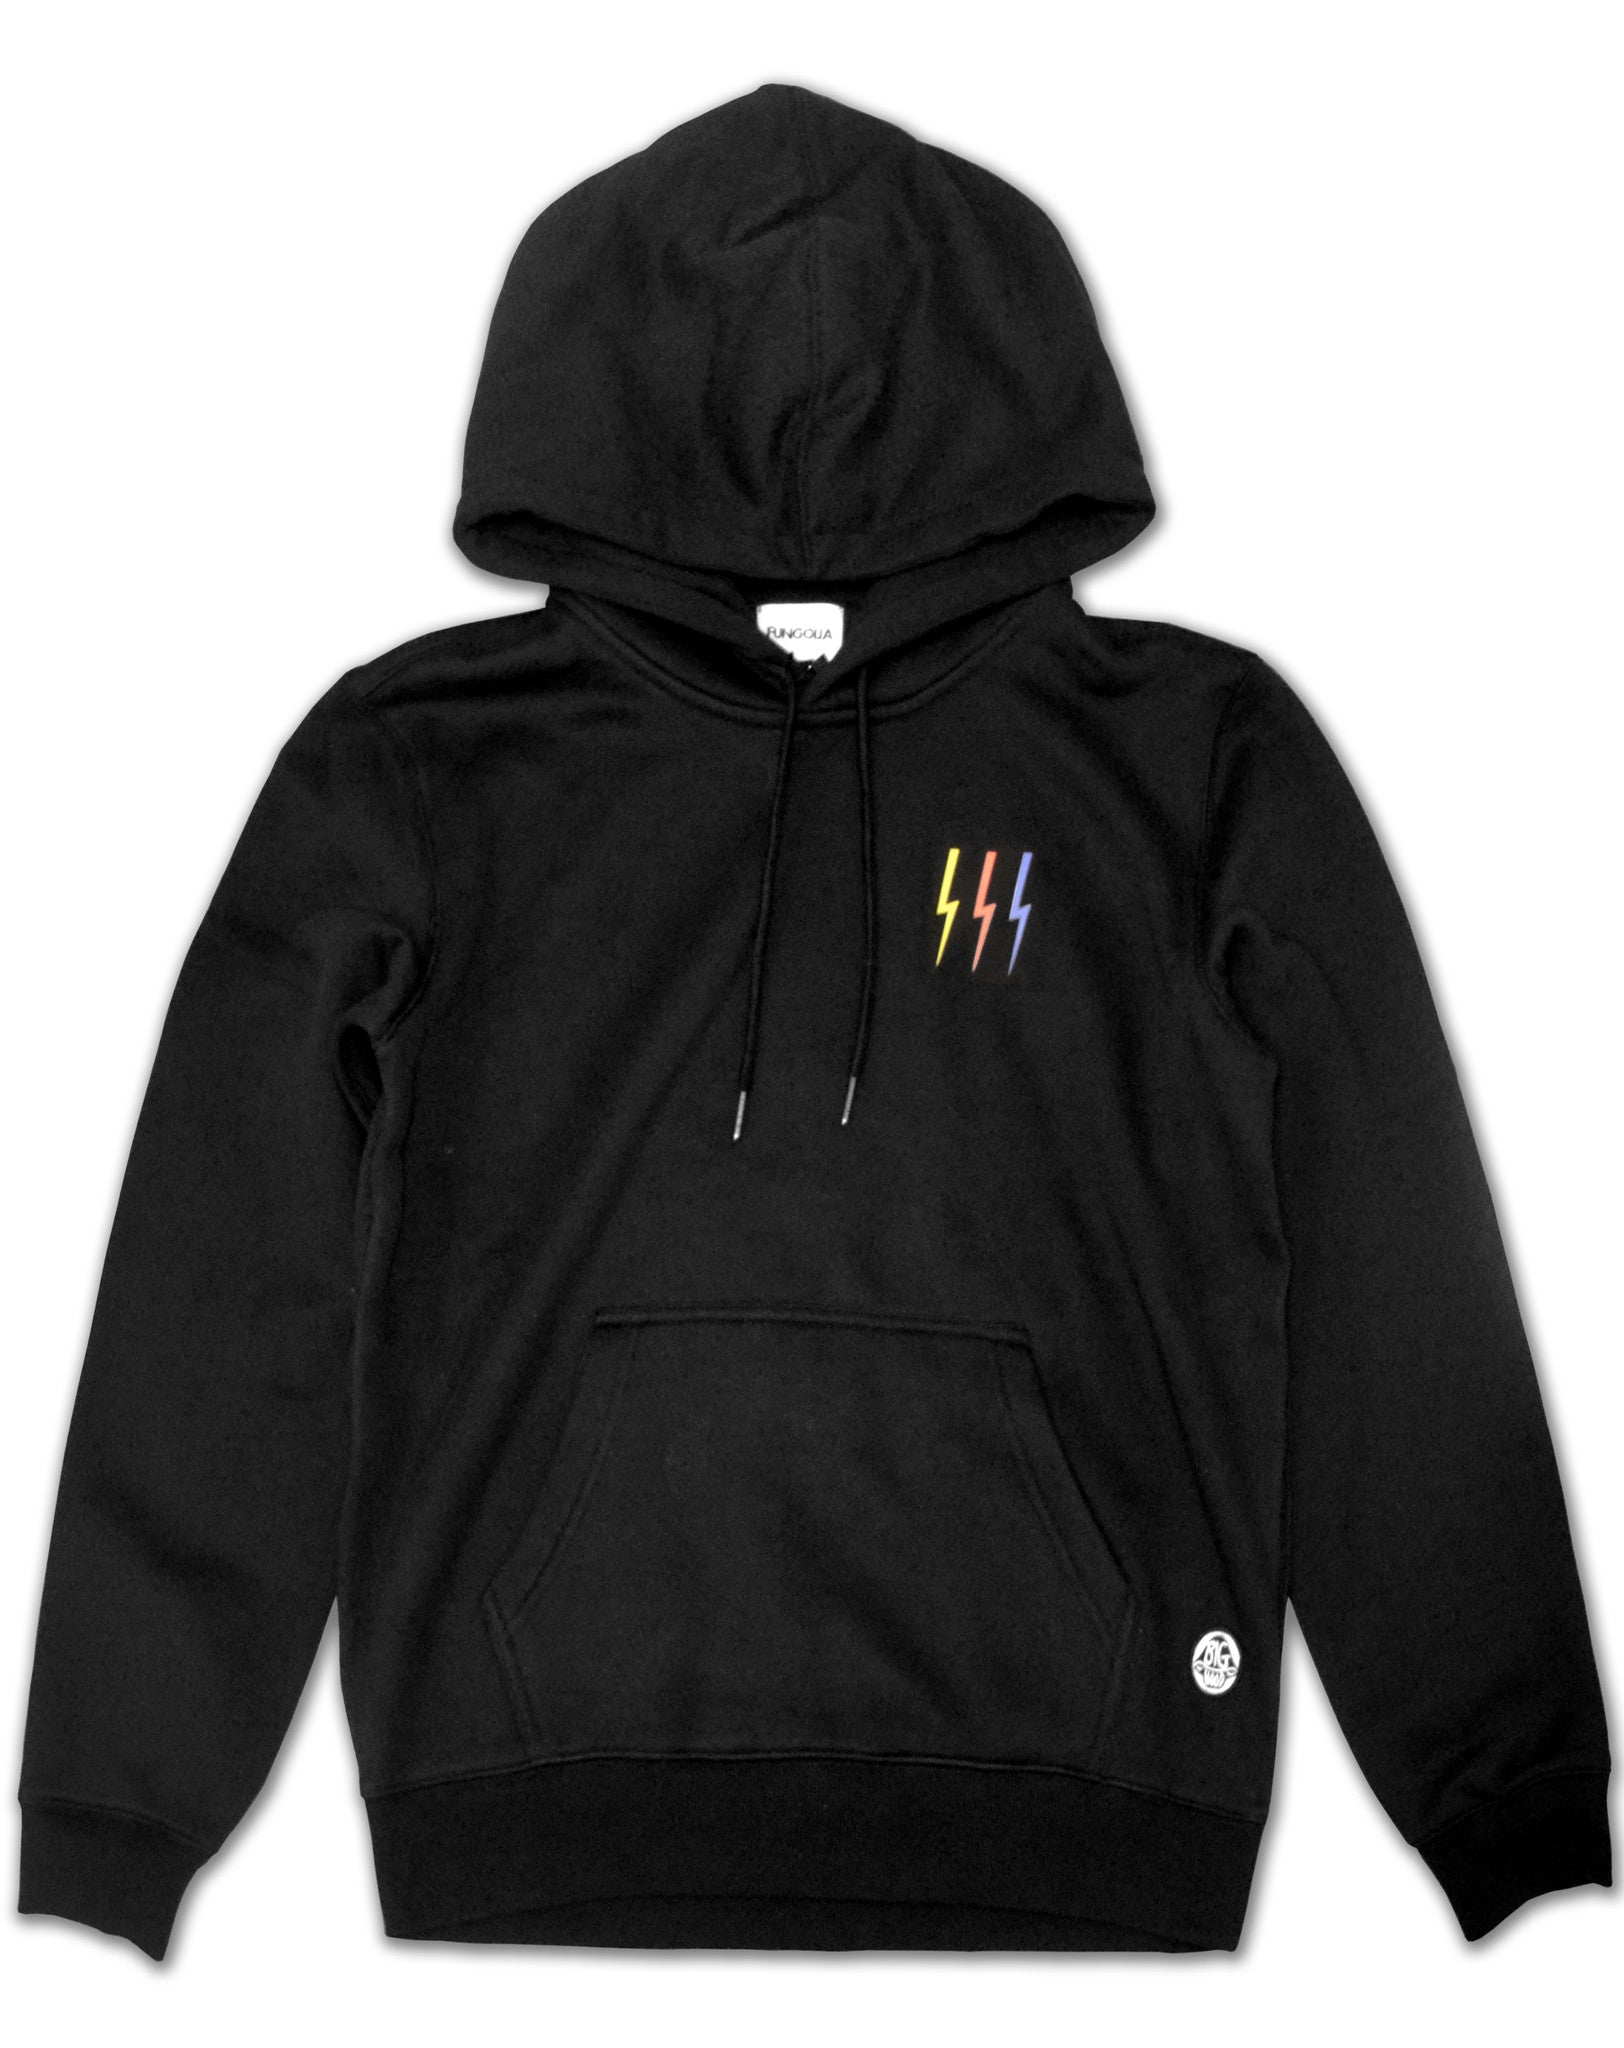 Fungolia fleece Hoodie - Thunderbolt (Black)